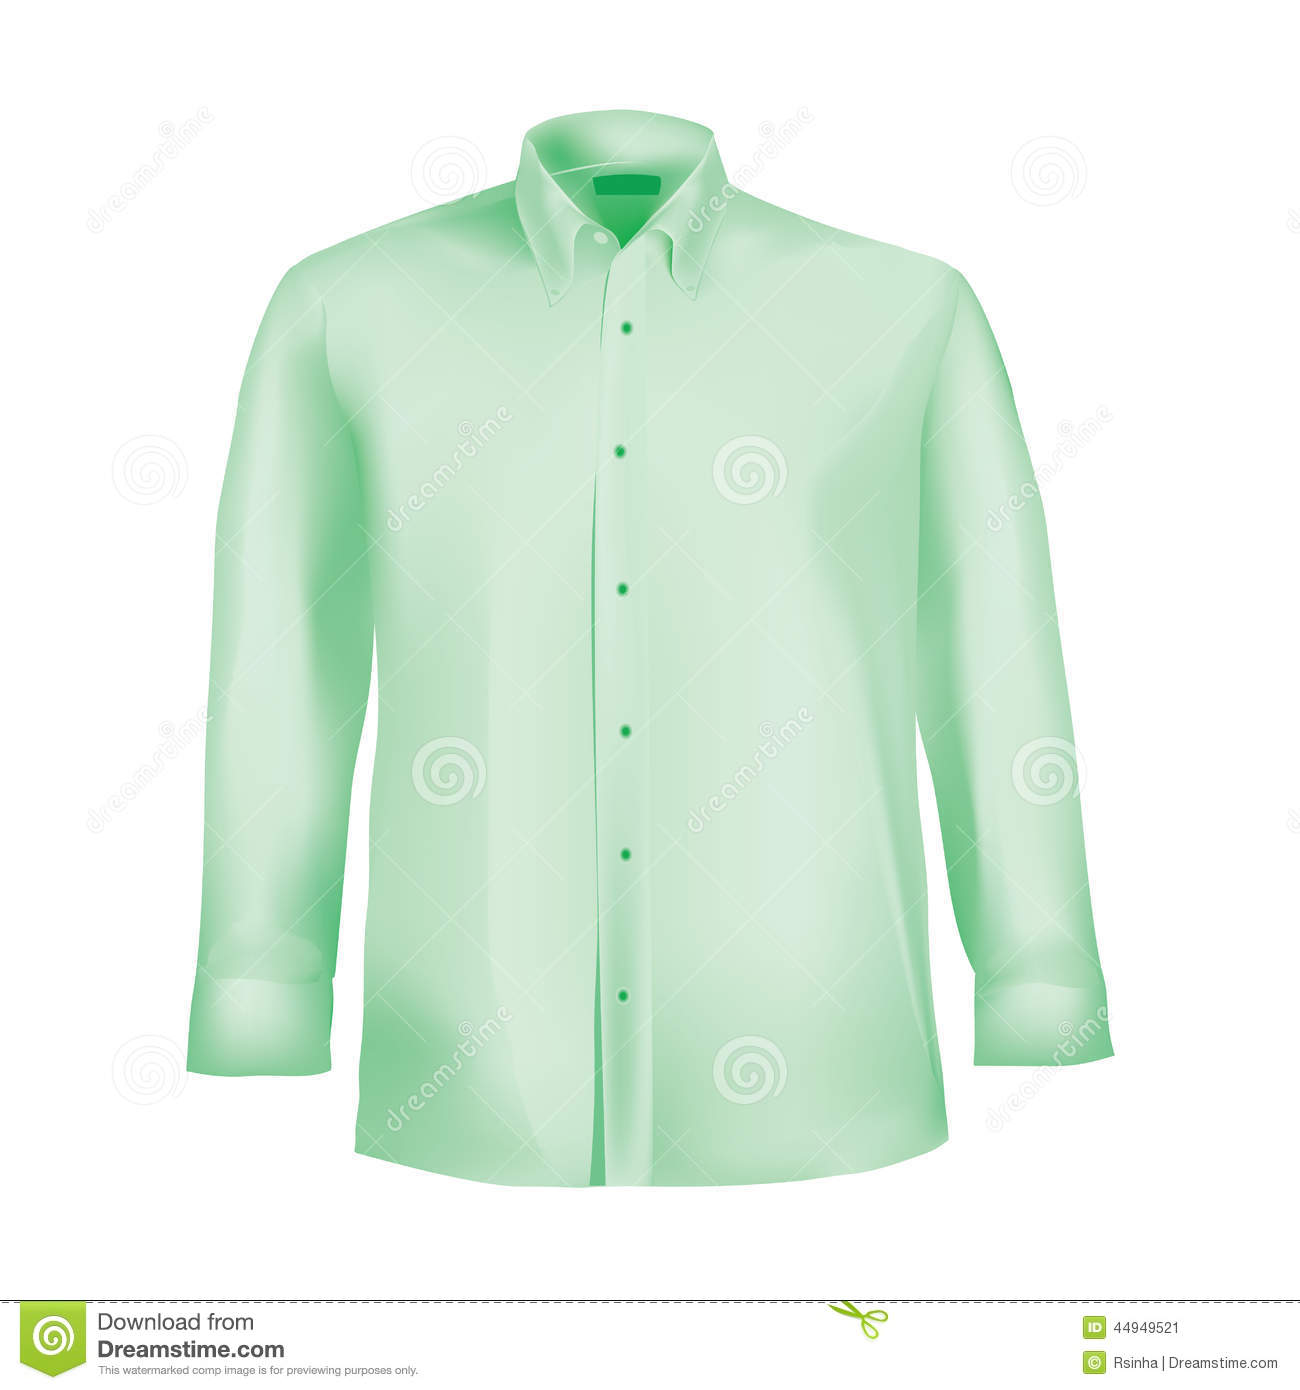 how to draw a button down shirt